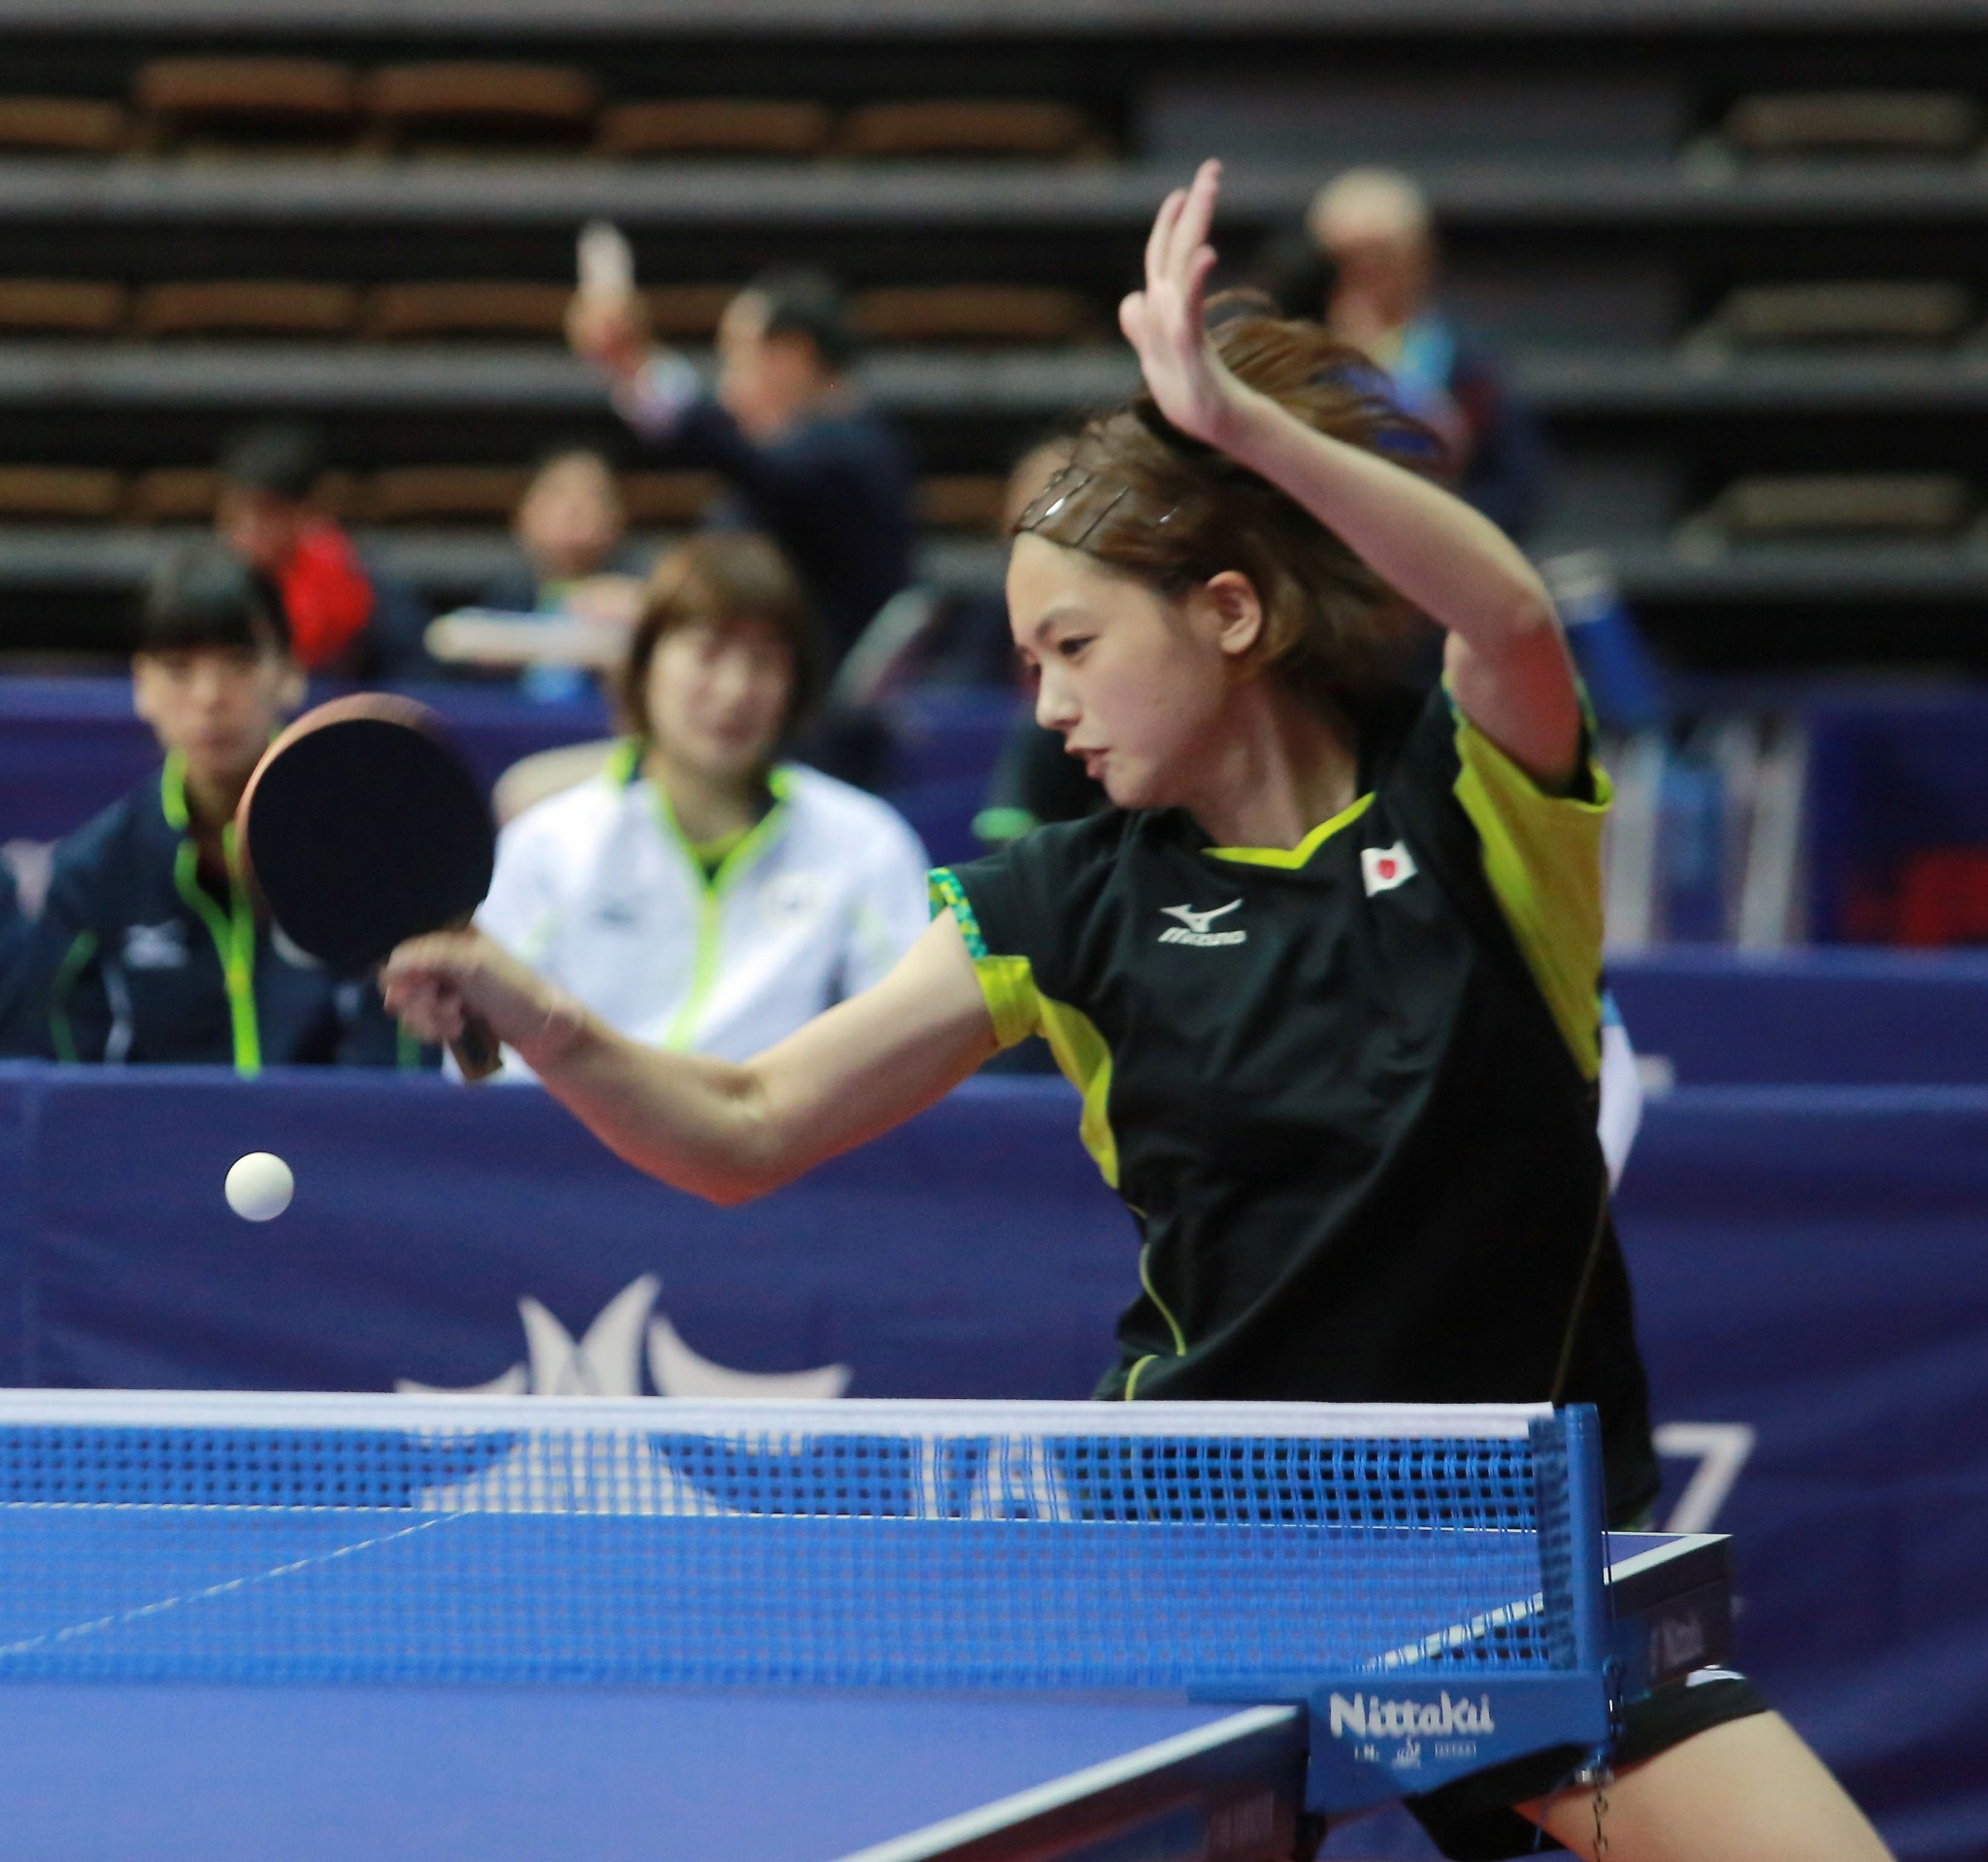 Taipei 2017: Day five of competition at the 29th Summer Universiade